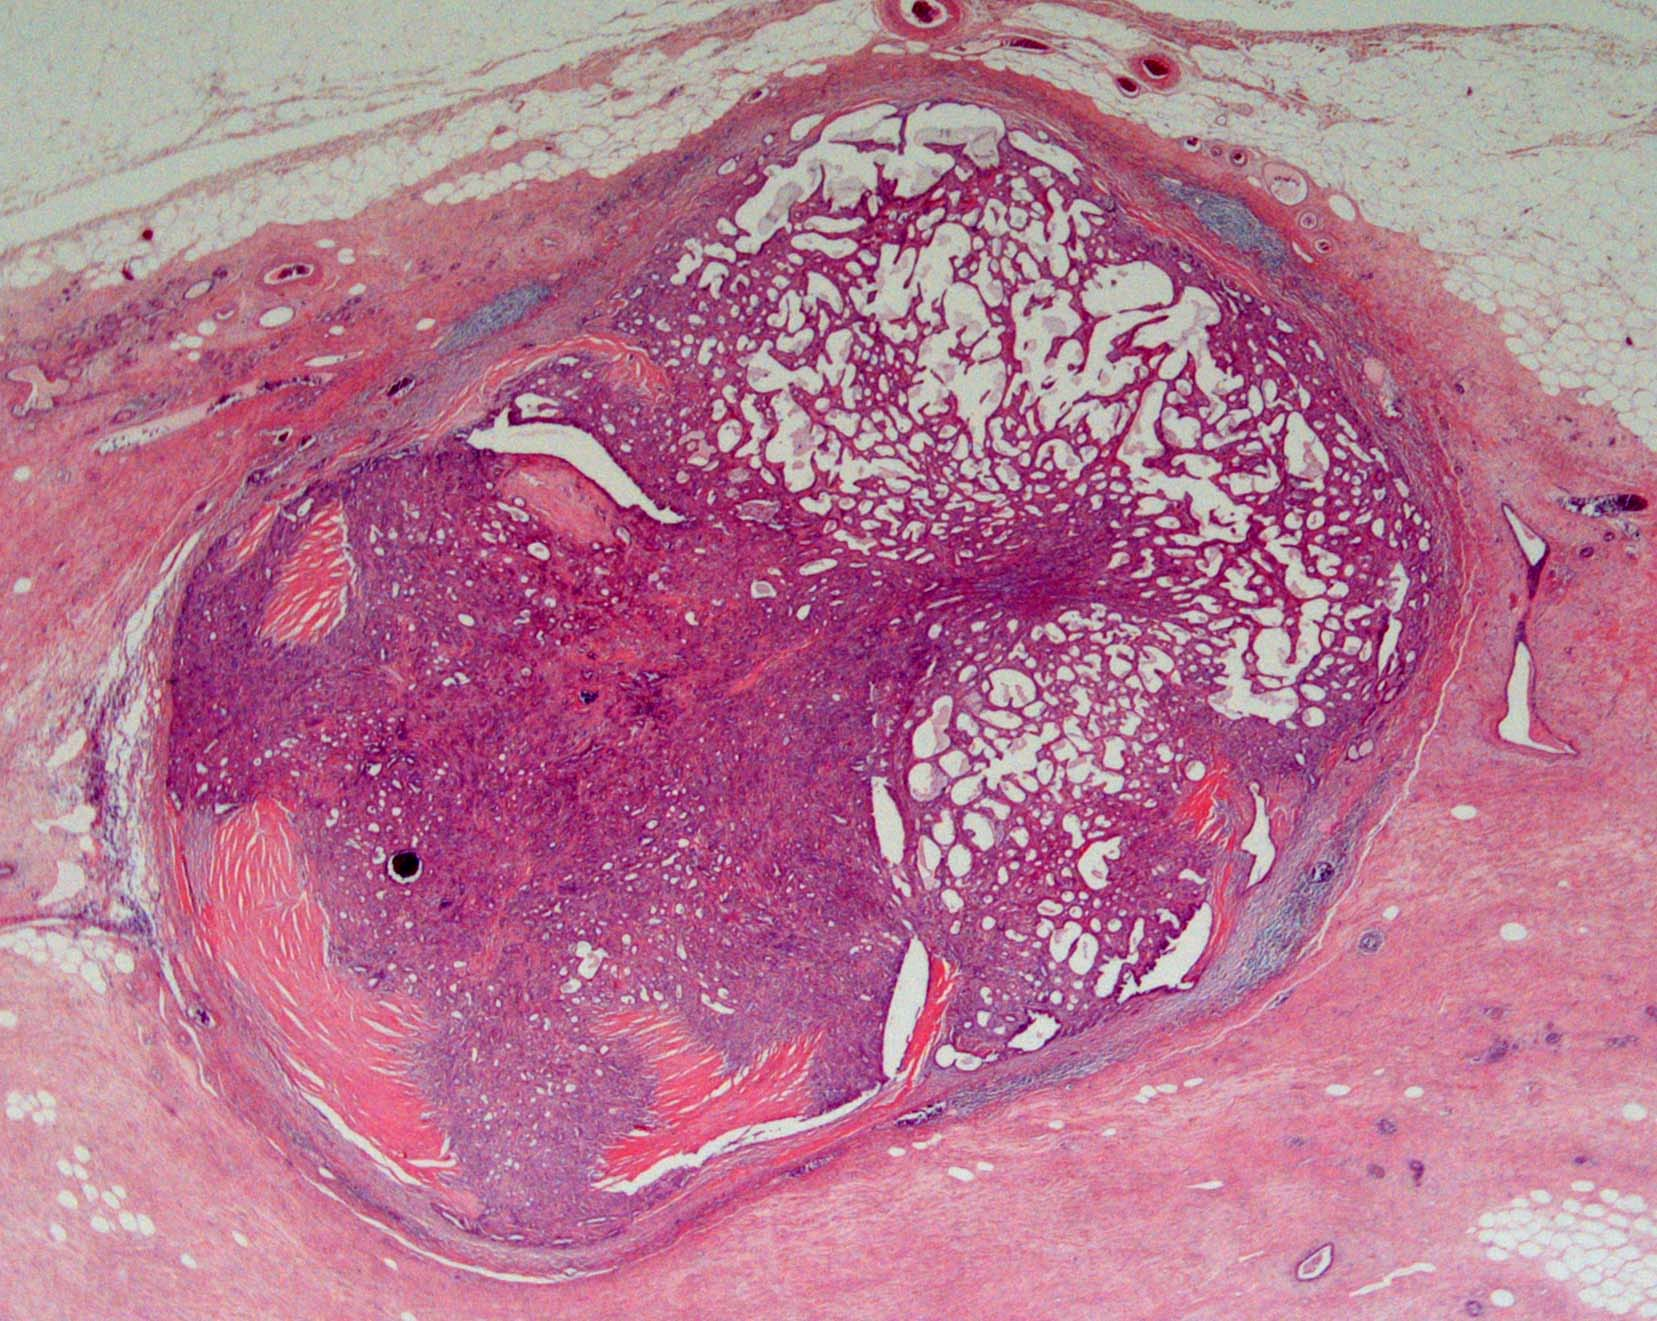 intraductal papilloma of breast pathology outlines